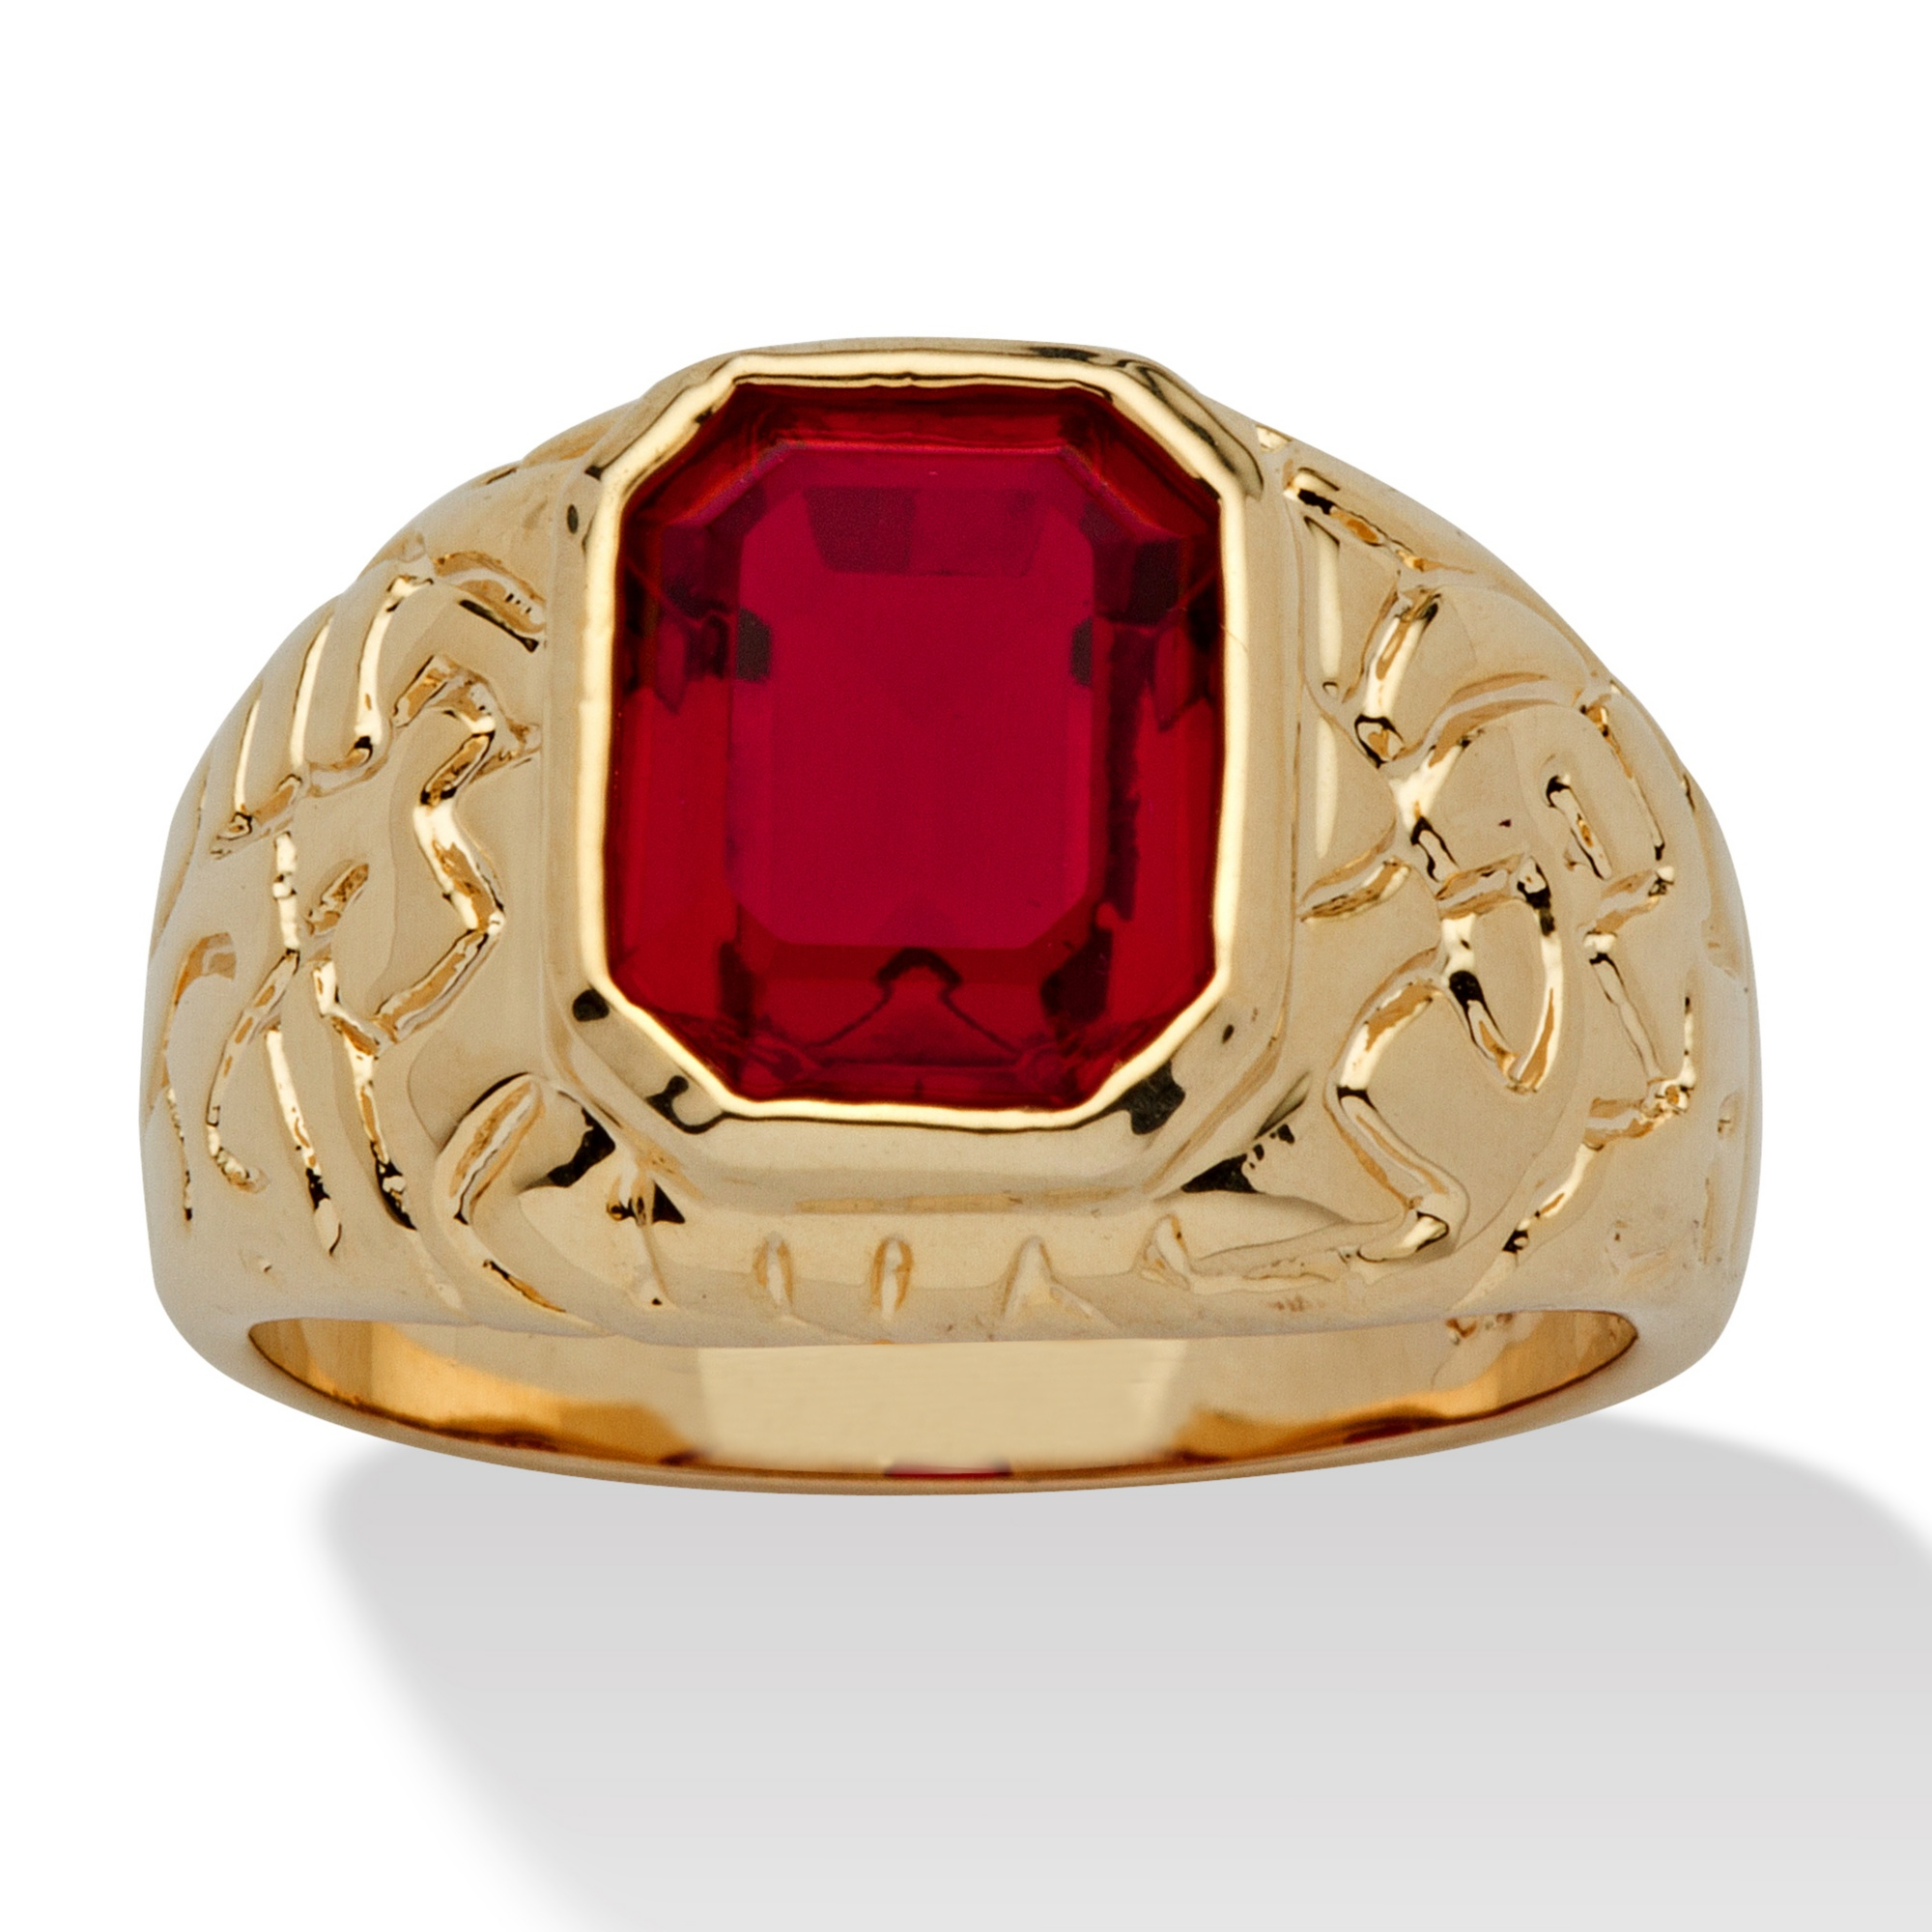 Men's Emerald-Cut Simulated Ruby Nugget-Style Ring 14k Yellow Gold-Plated Sizes 8-16 - Size 9